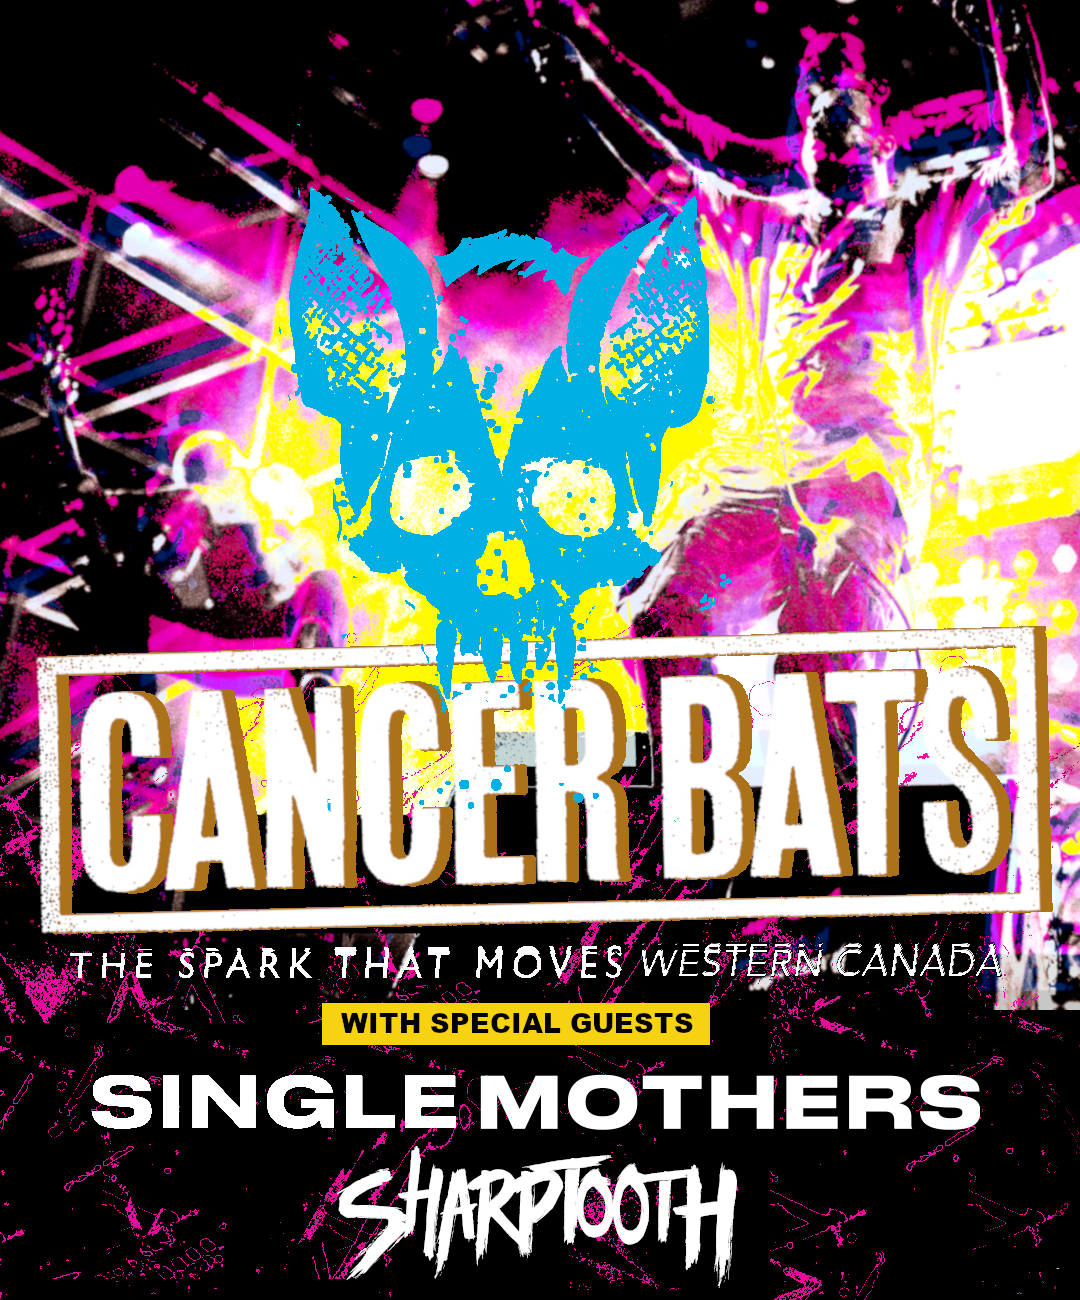 Cancer Bats!, Single Mothers, Sharptooth, Wizard Rifle, Blue Youth - Sept 15 - Image 1